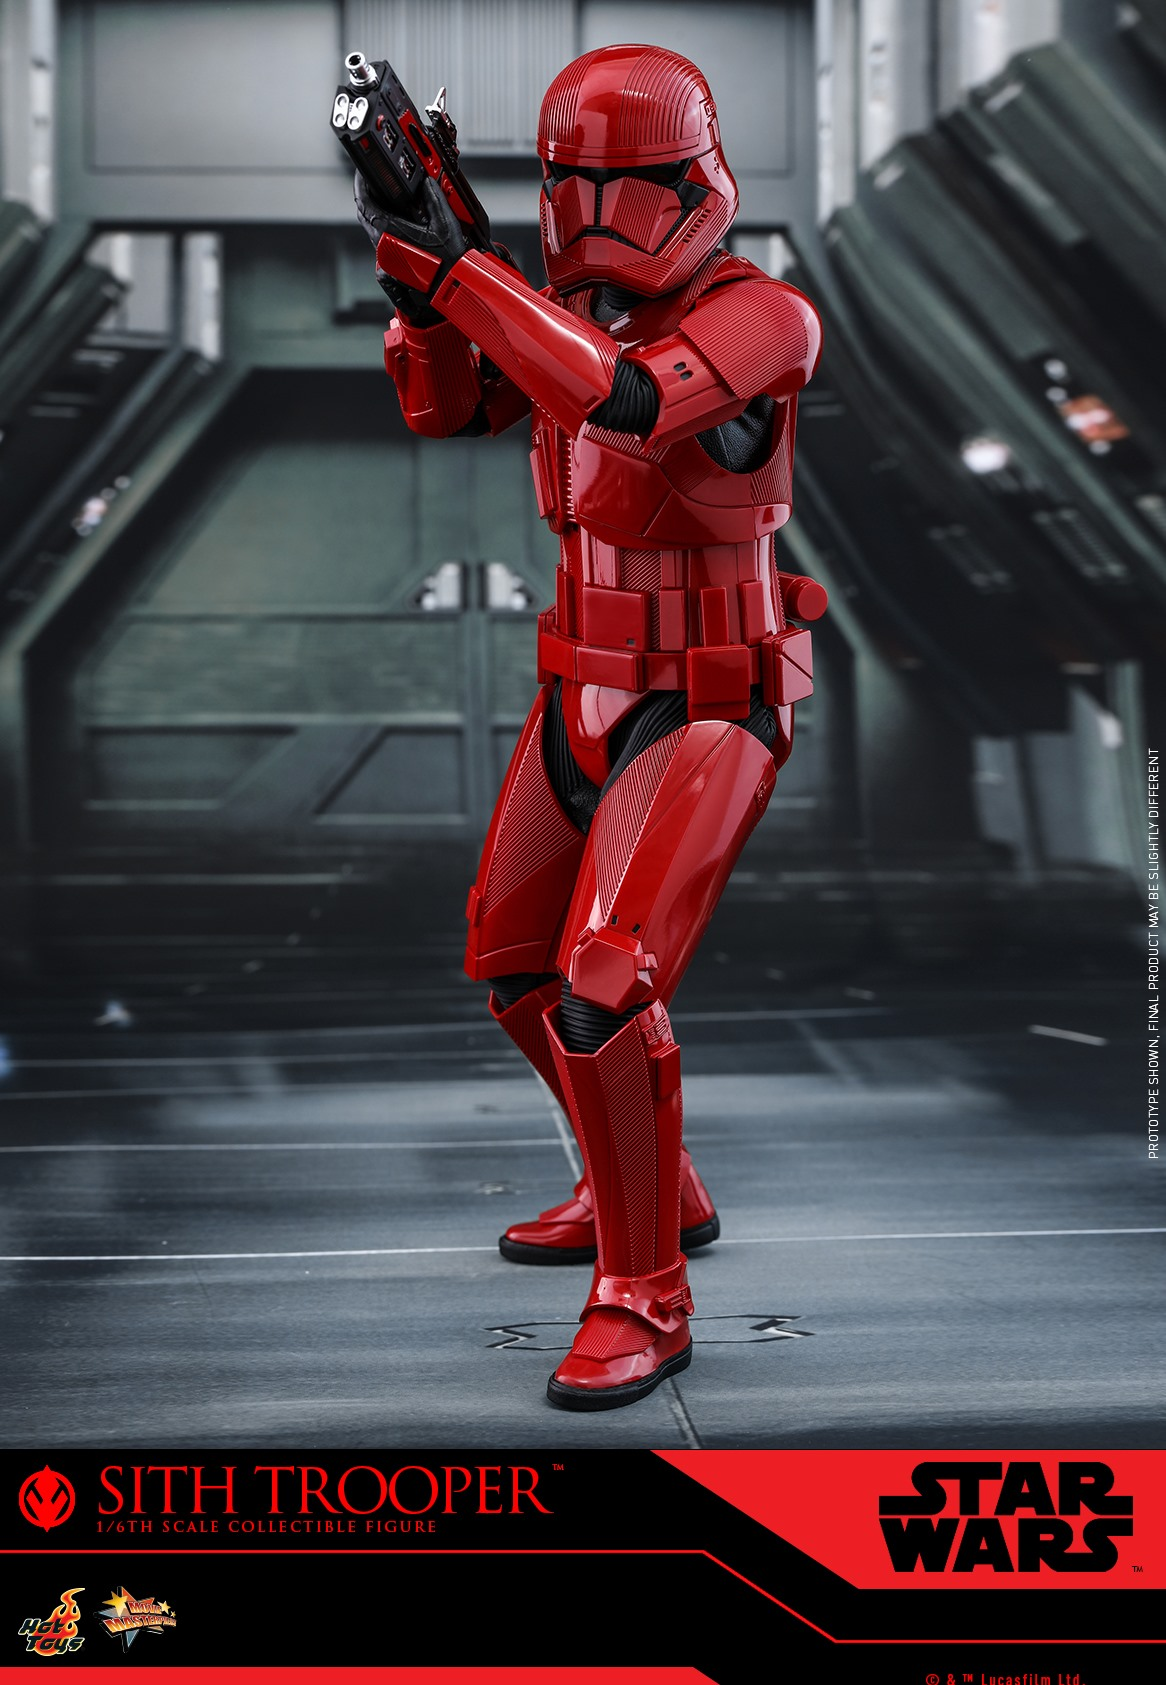 Pre-Order Hot Toys Star Wars Sith Trooper 1:6th Figure